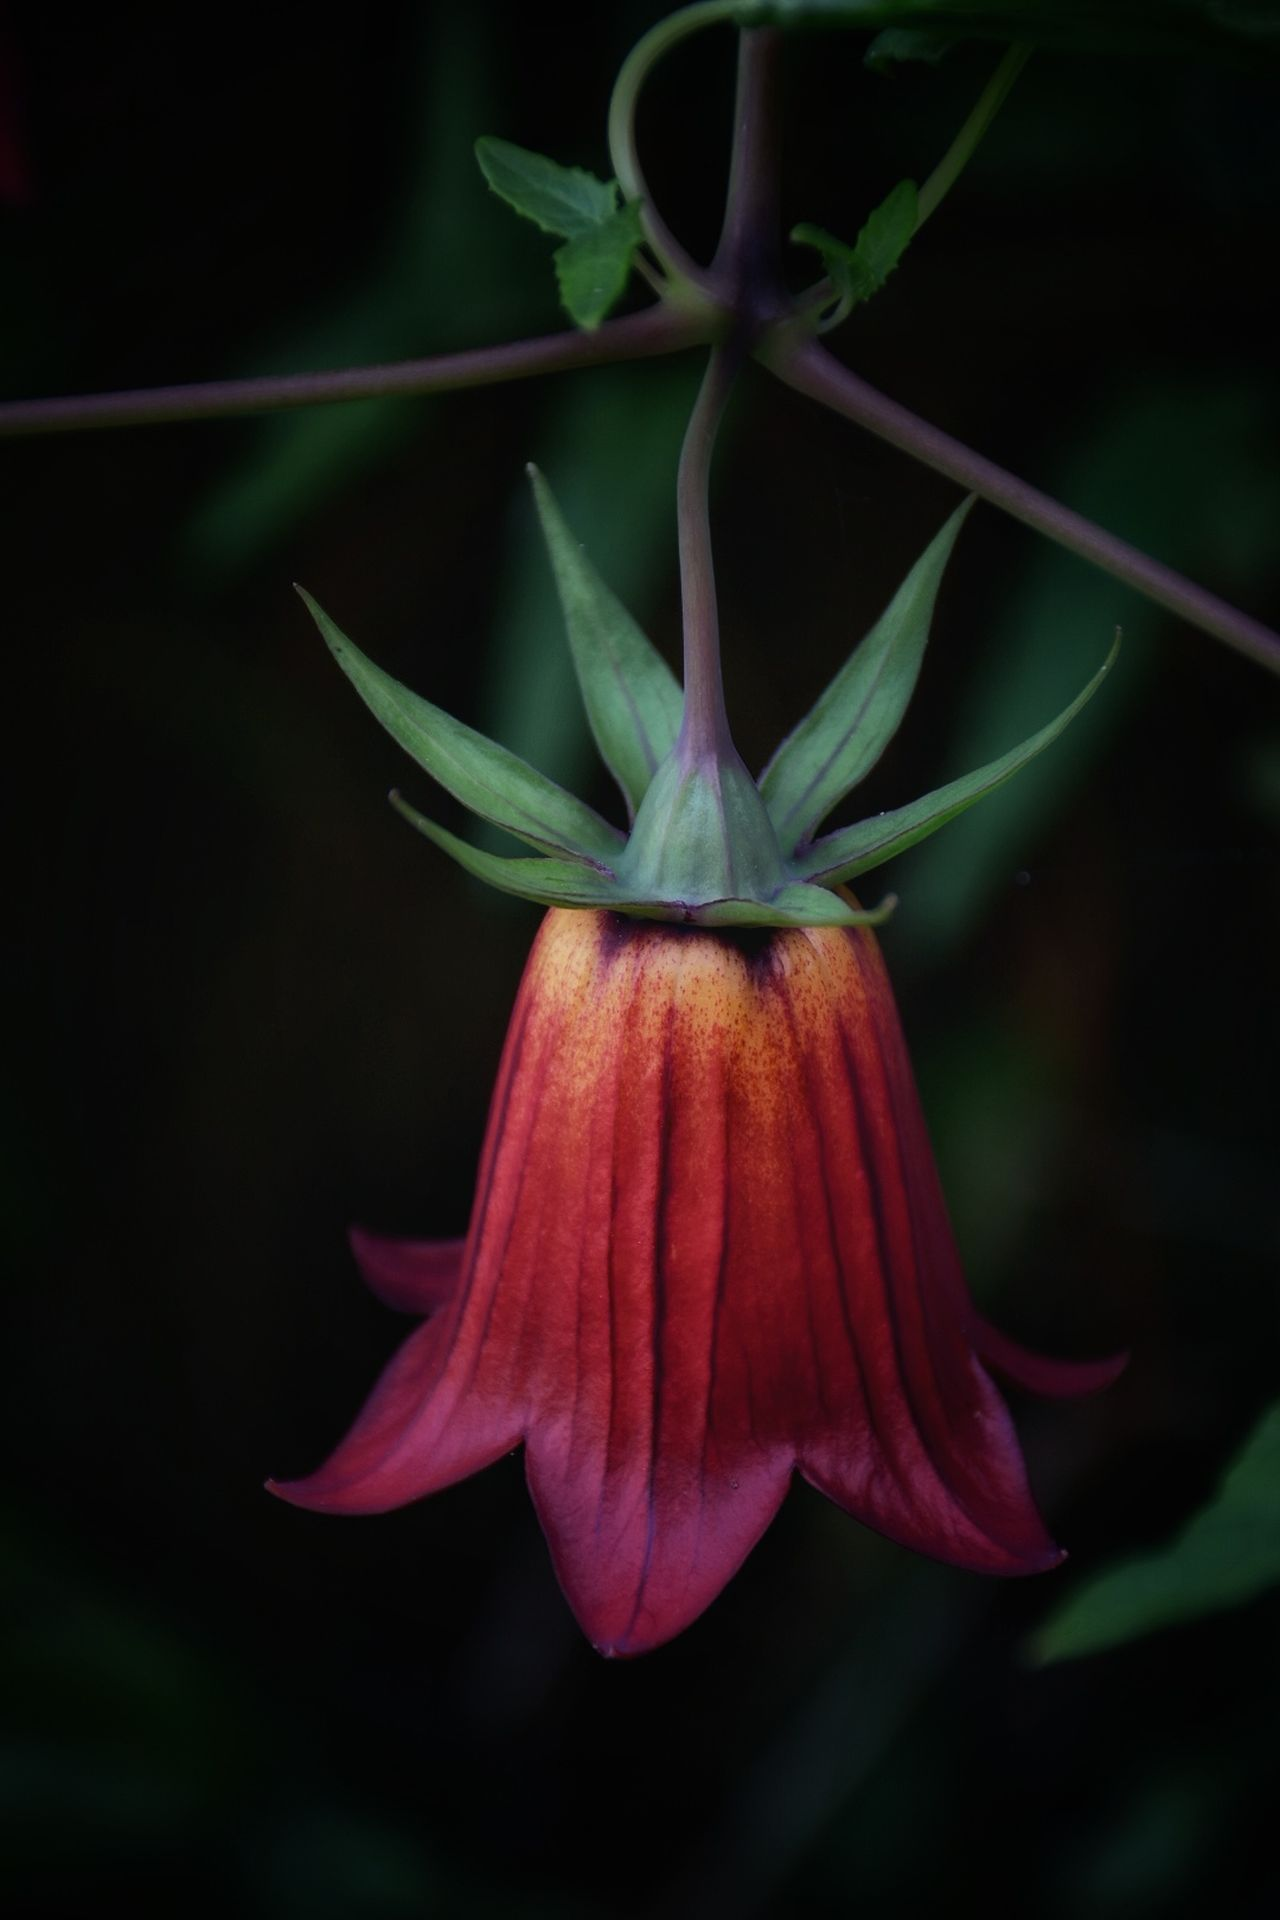 Flower Nature Plant Beauty In Nature Flower Head Fragility Outdoors Canarias Canarina Canariensis Bicacaro Beauty In Nature Españoles Y Sus Fotos Europe_gallery Canary ıslands Tenerife Island Tenerife España Nature Laurisilva Forest Laurisilva